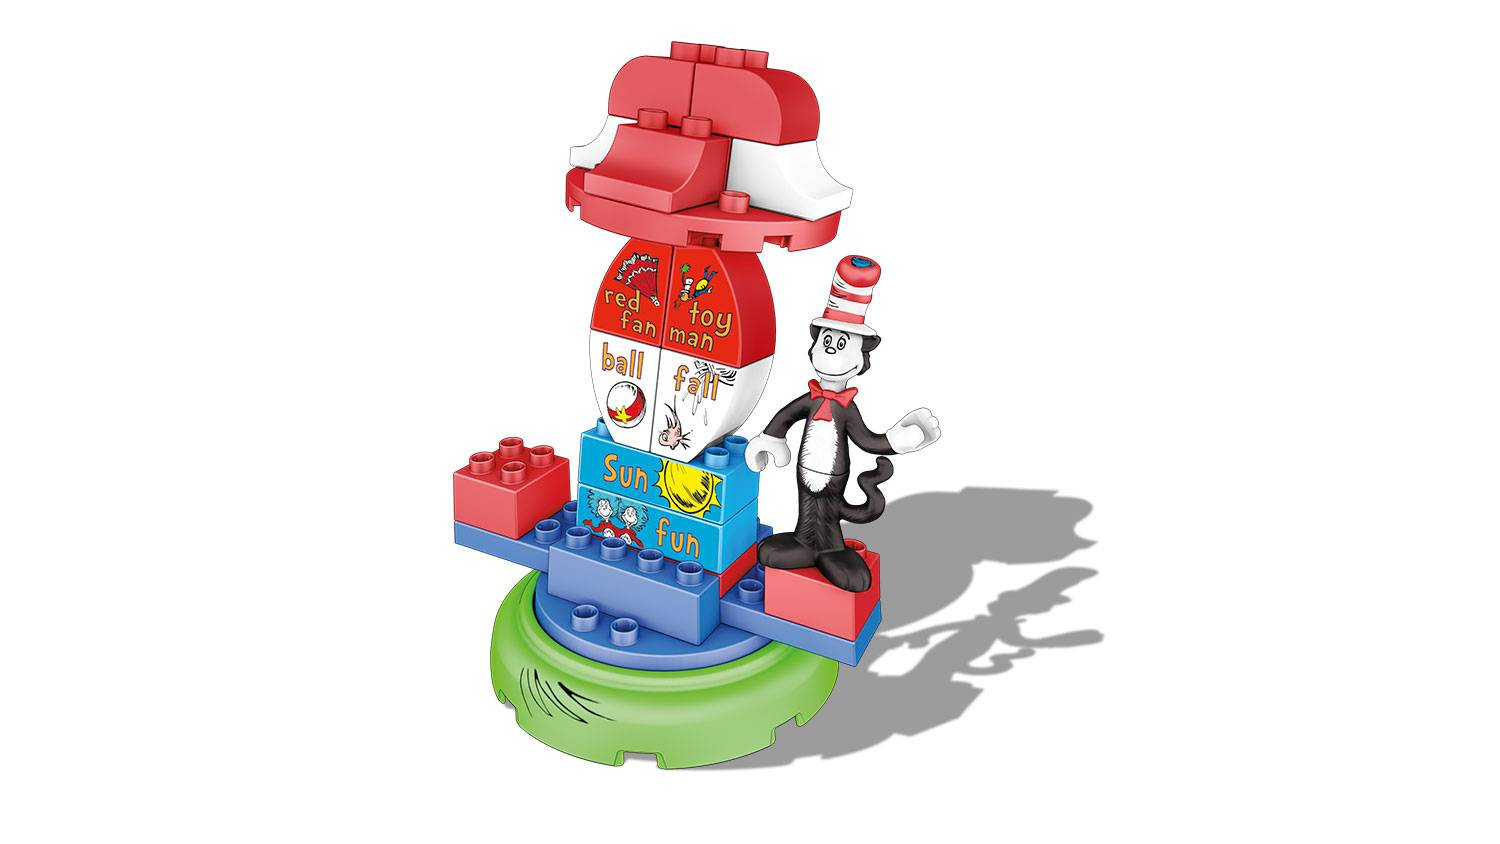 The Cat in the Hat Carousel